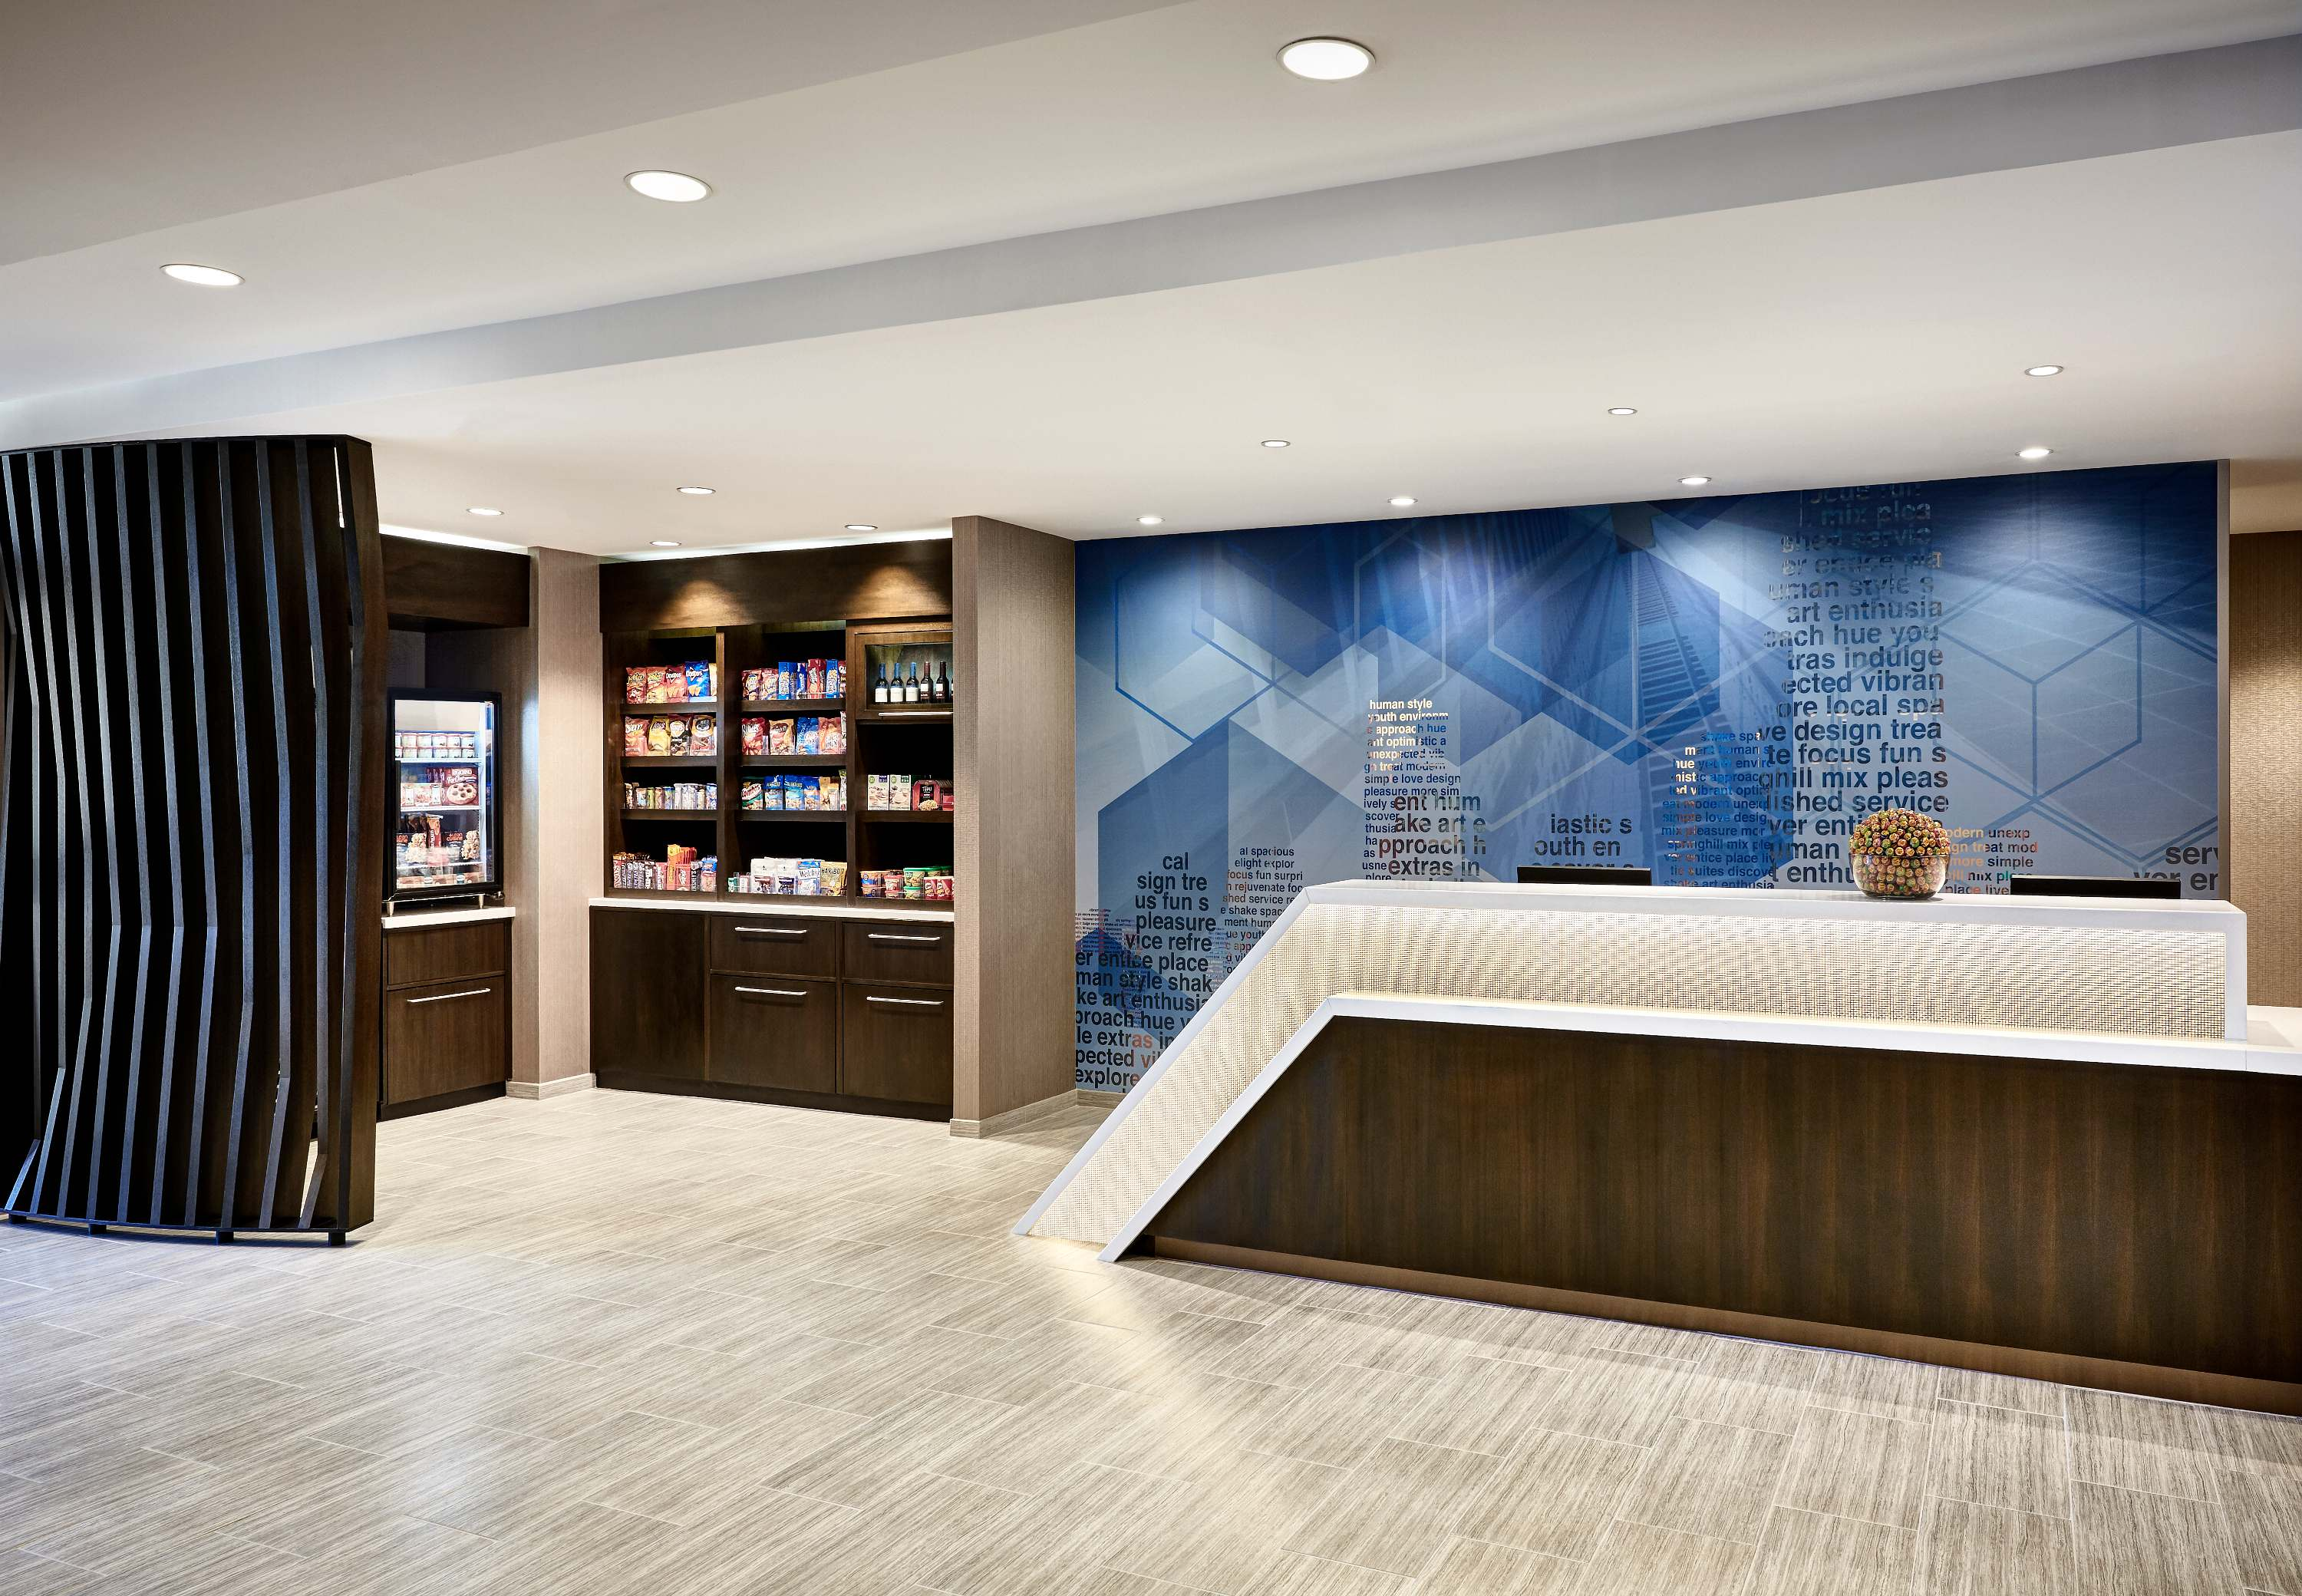 SpringHill Suites by Marriott Albuquerque North/Journal Center image 2